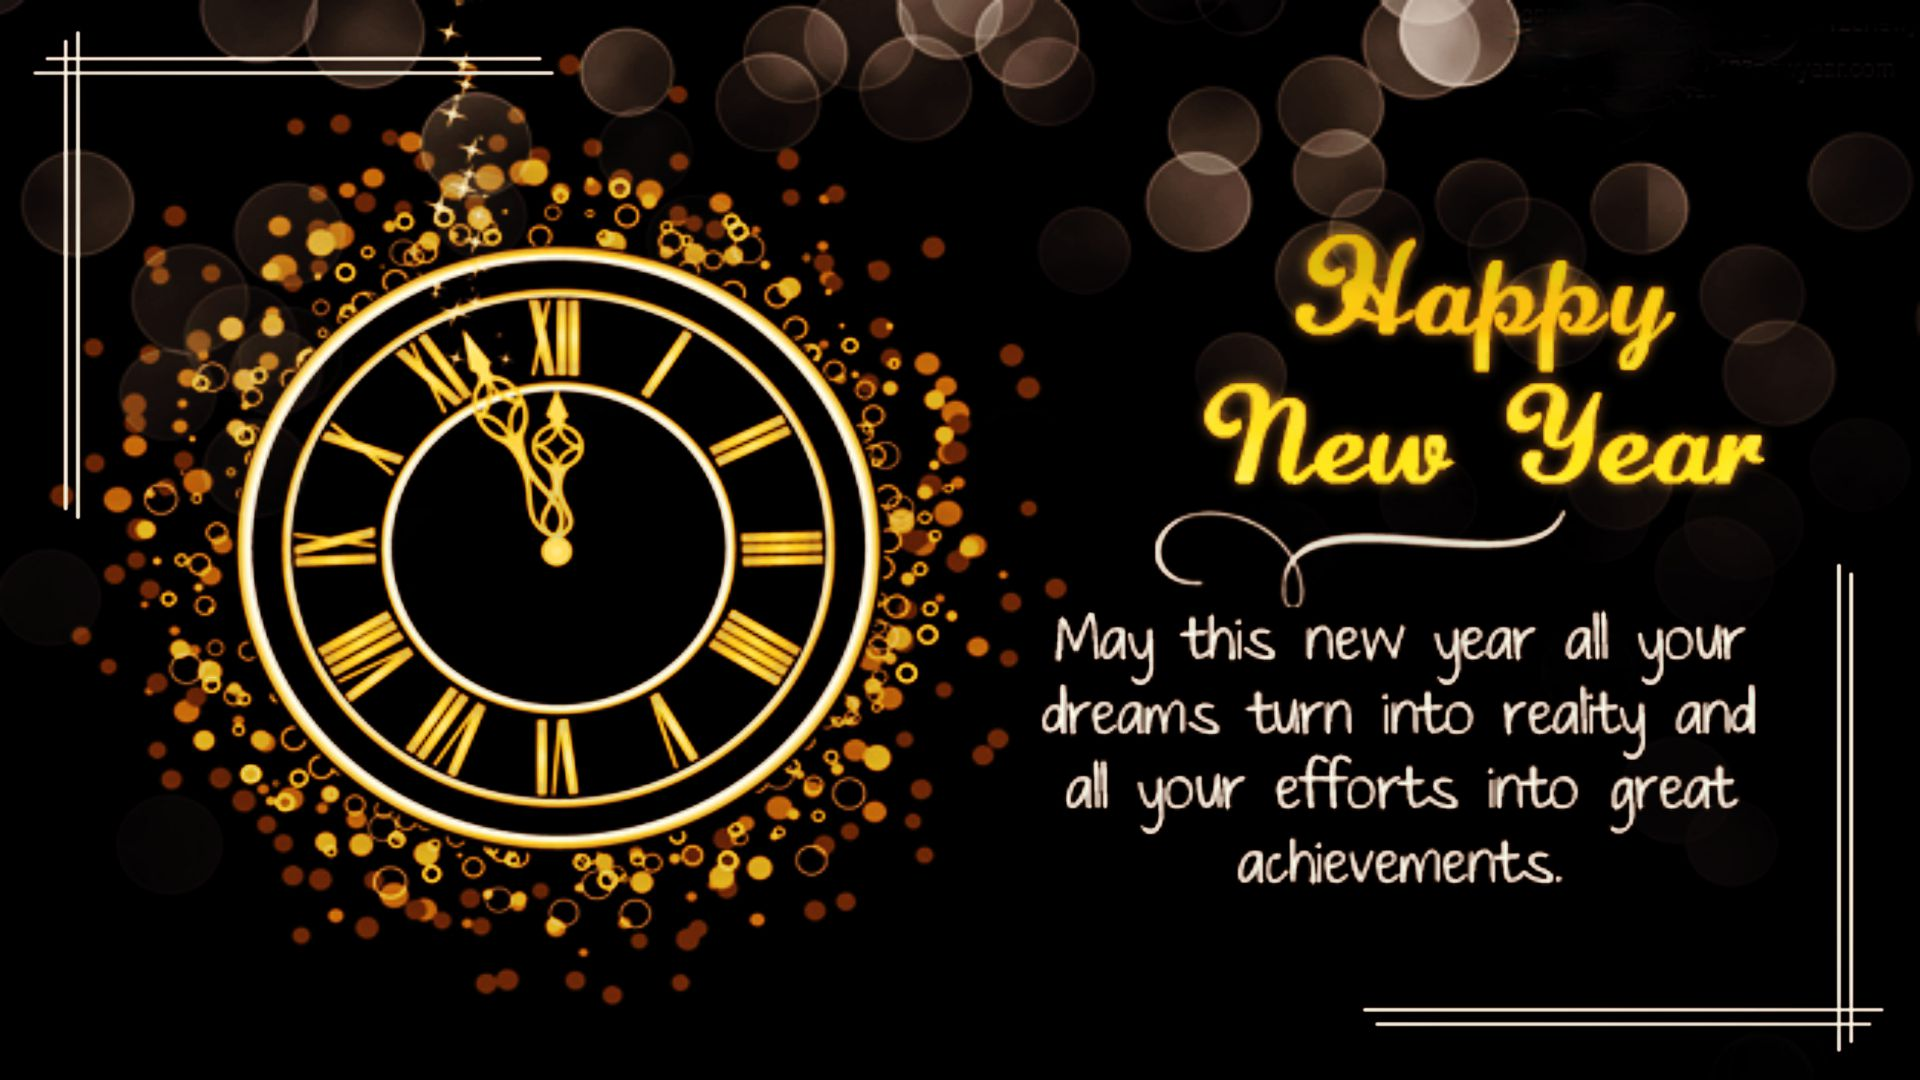 beautiful happy new year wallpapers hd 4